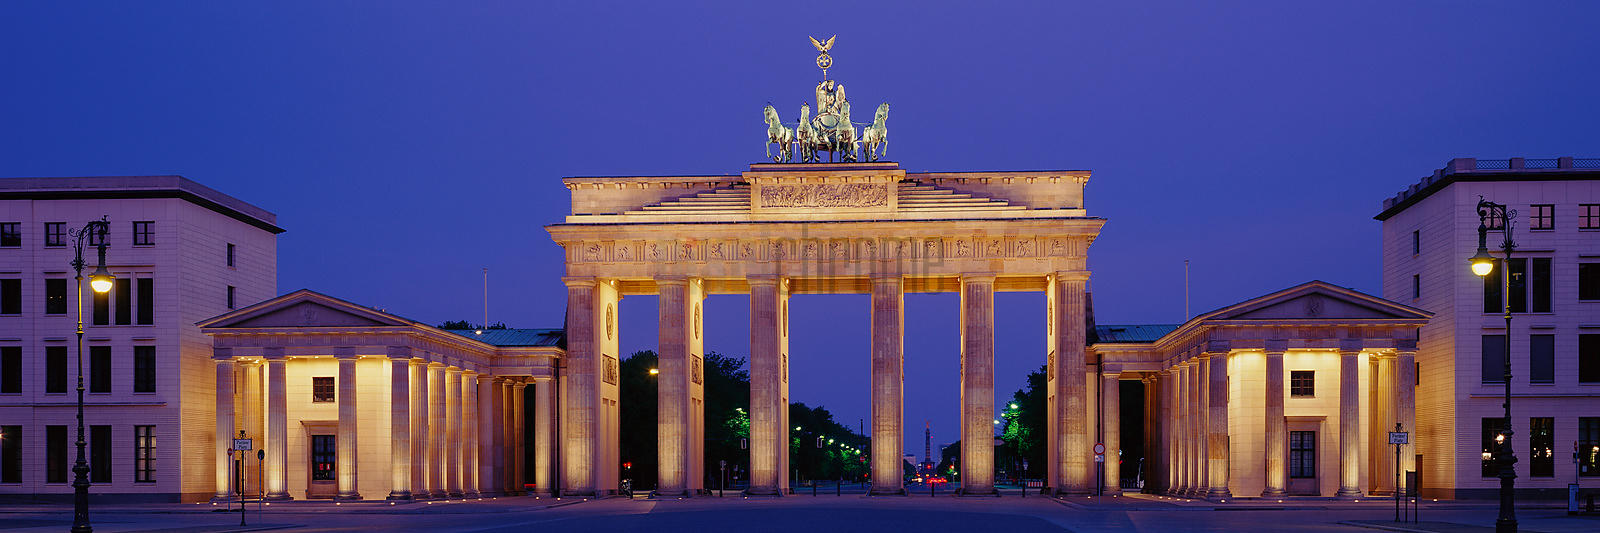 Brandenburg Gate at Dusk